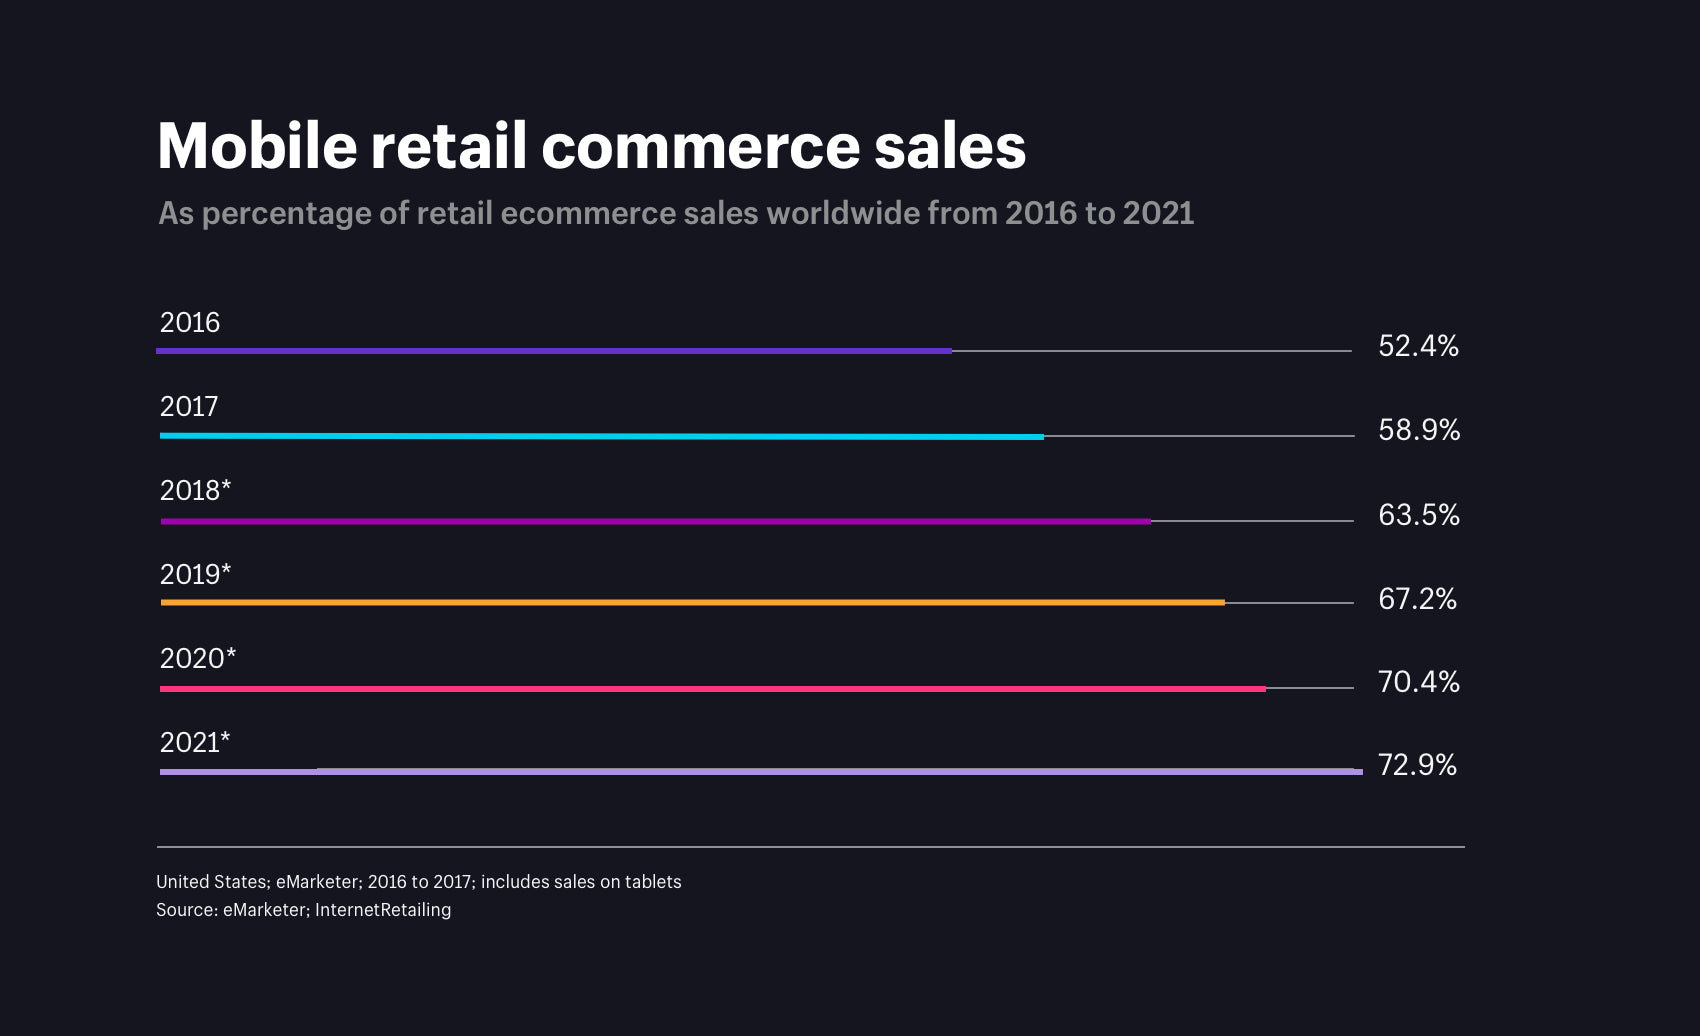 mobile retail commerce sales as percentage of retail ecommerce sales worldwide